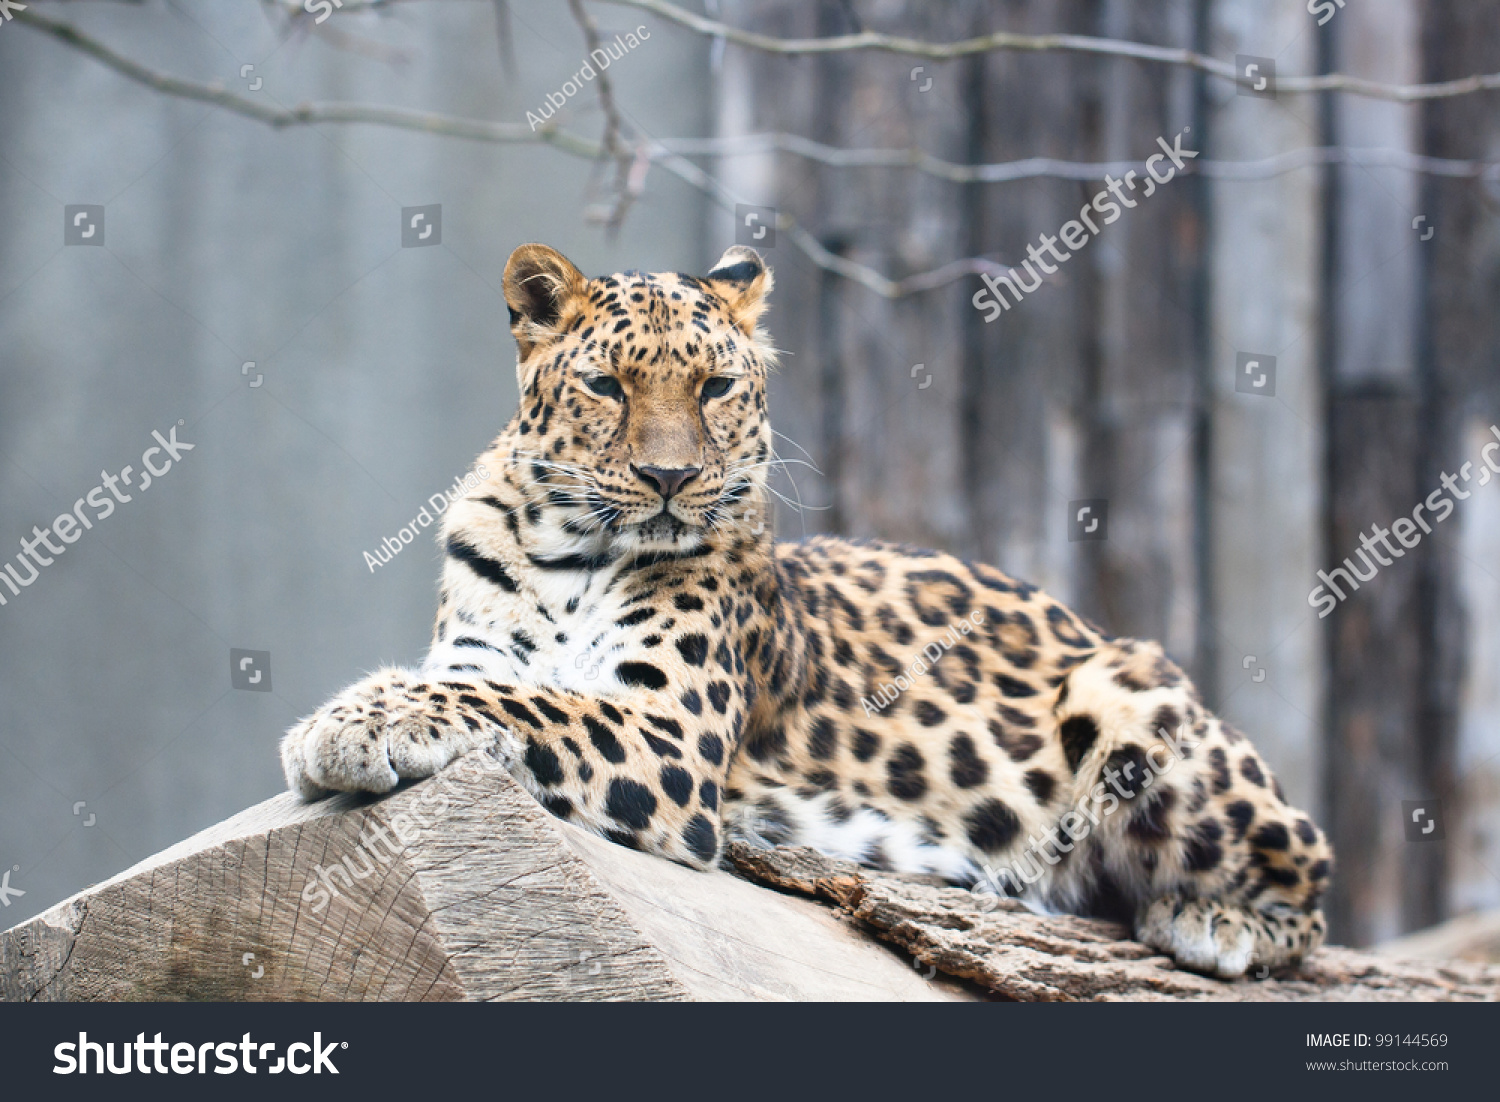 Simple essay leopard